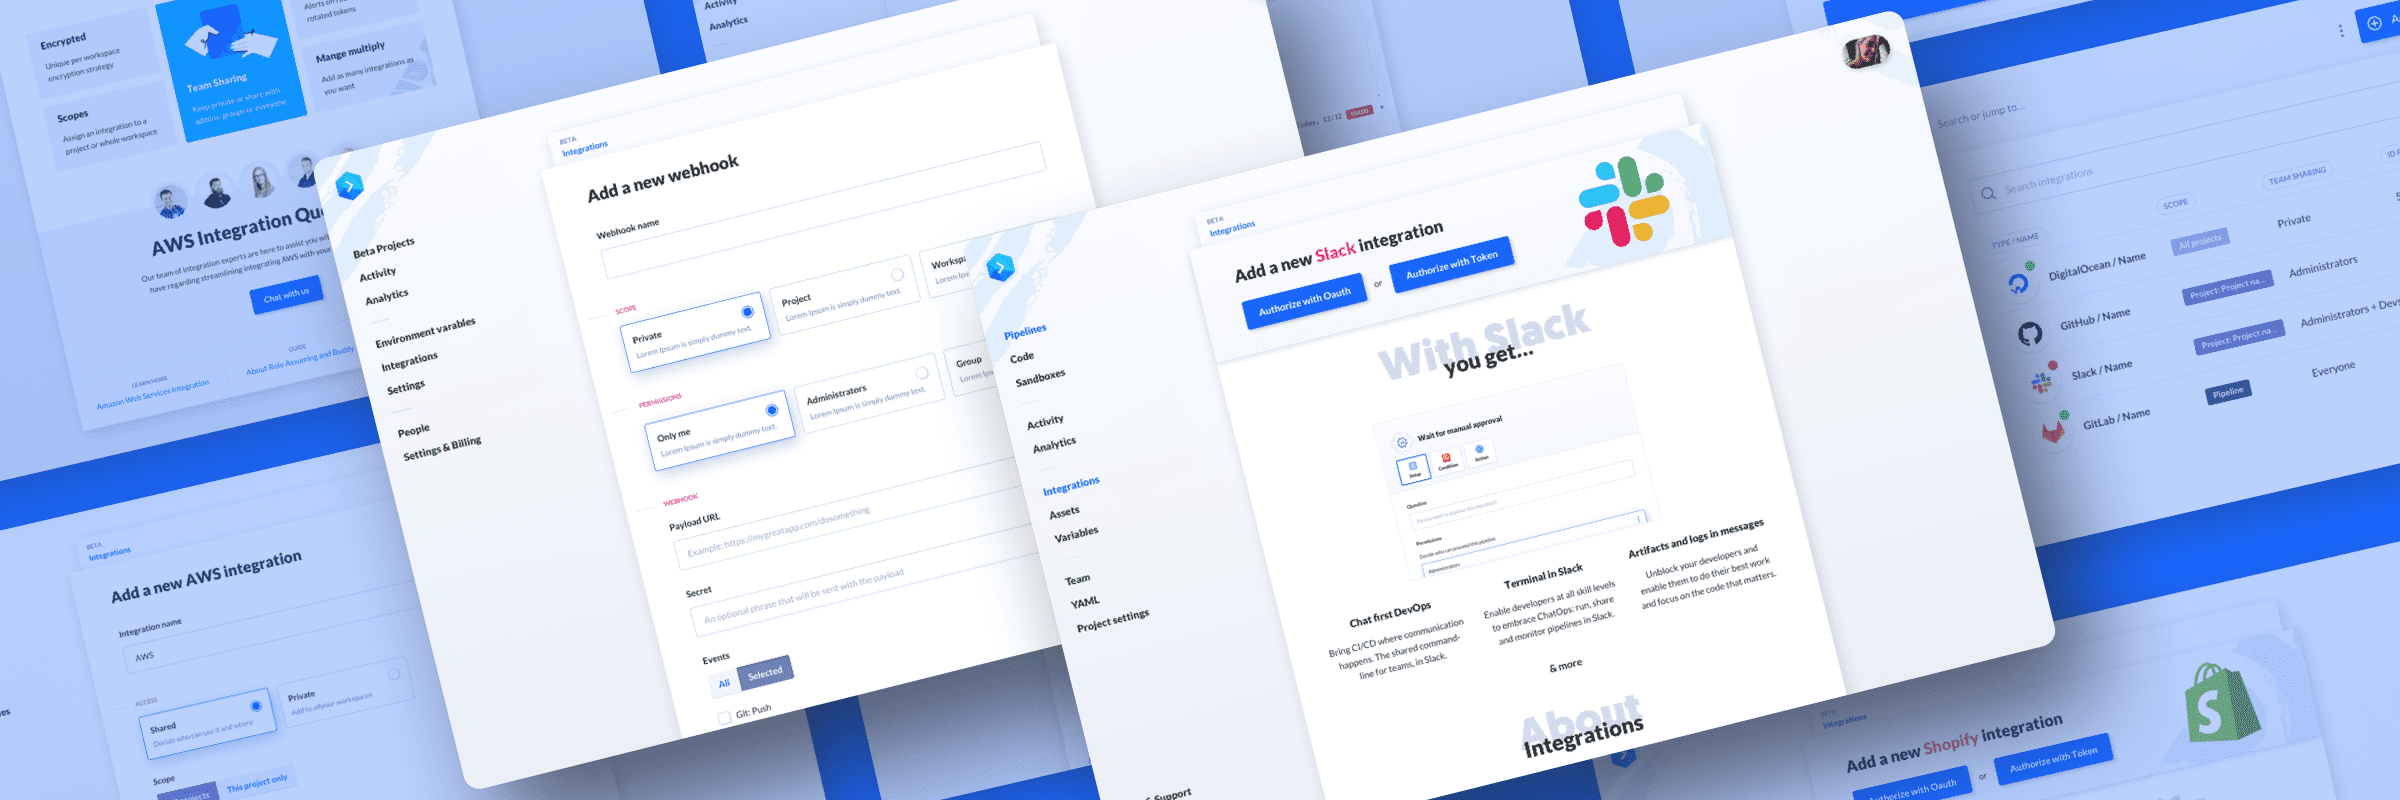 Buddy 2.0: Say hello to new integrations! 🔥